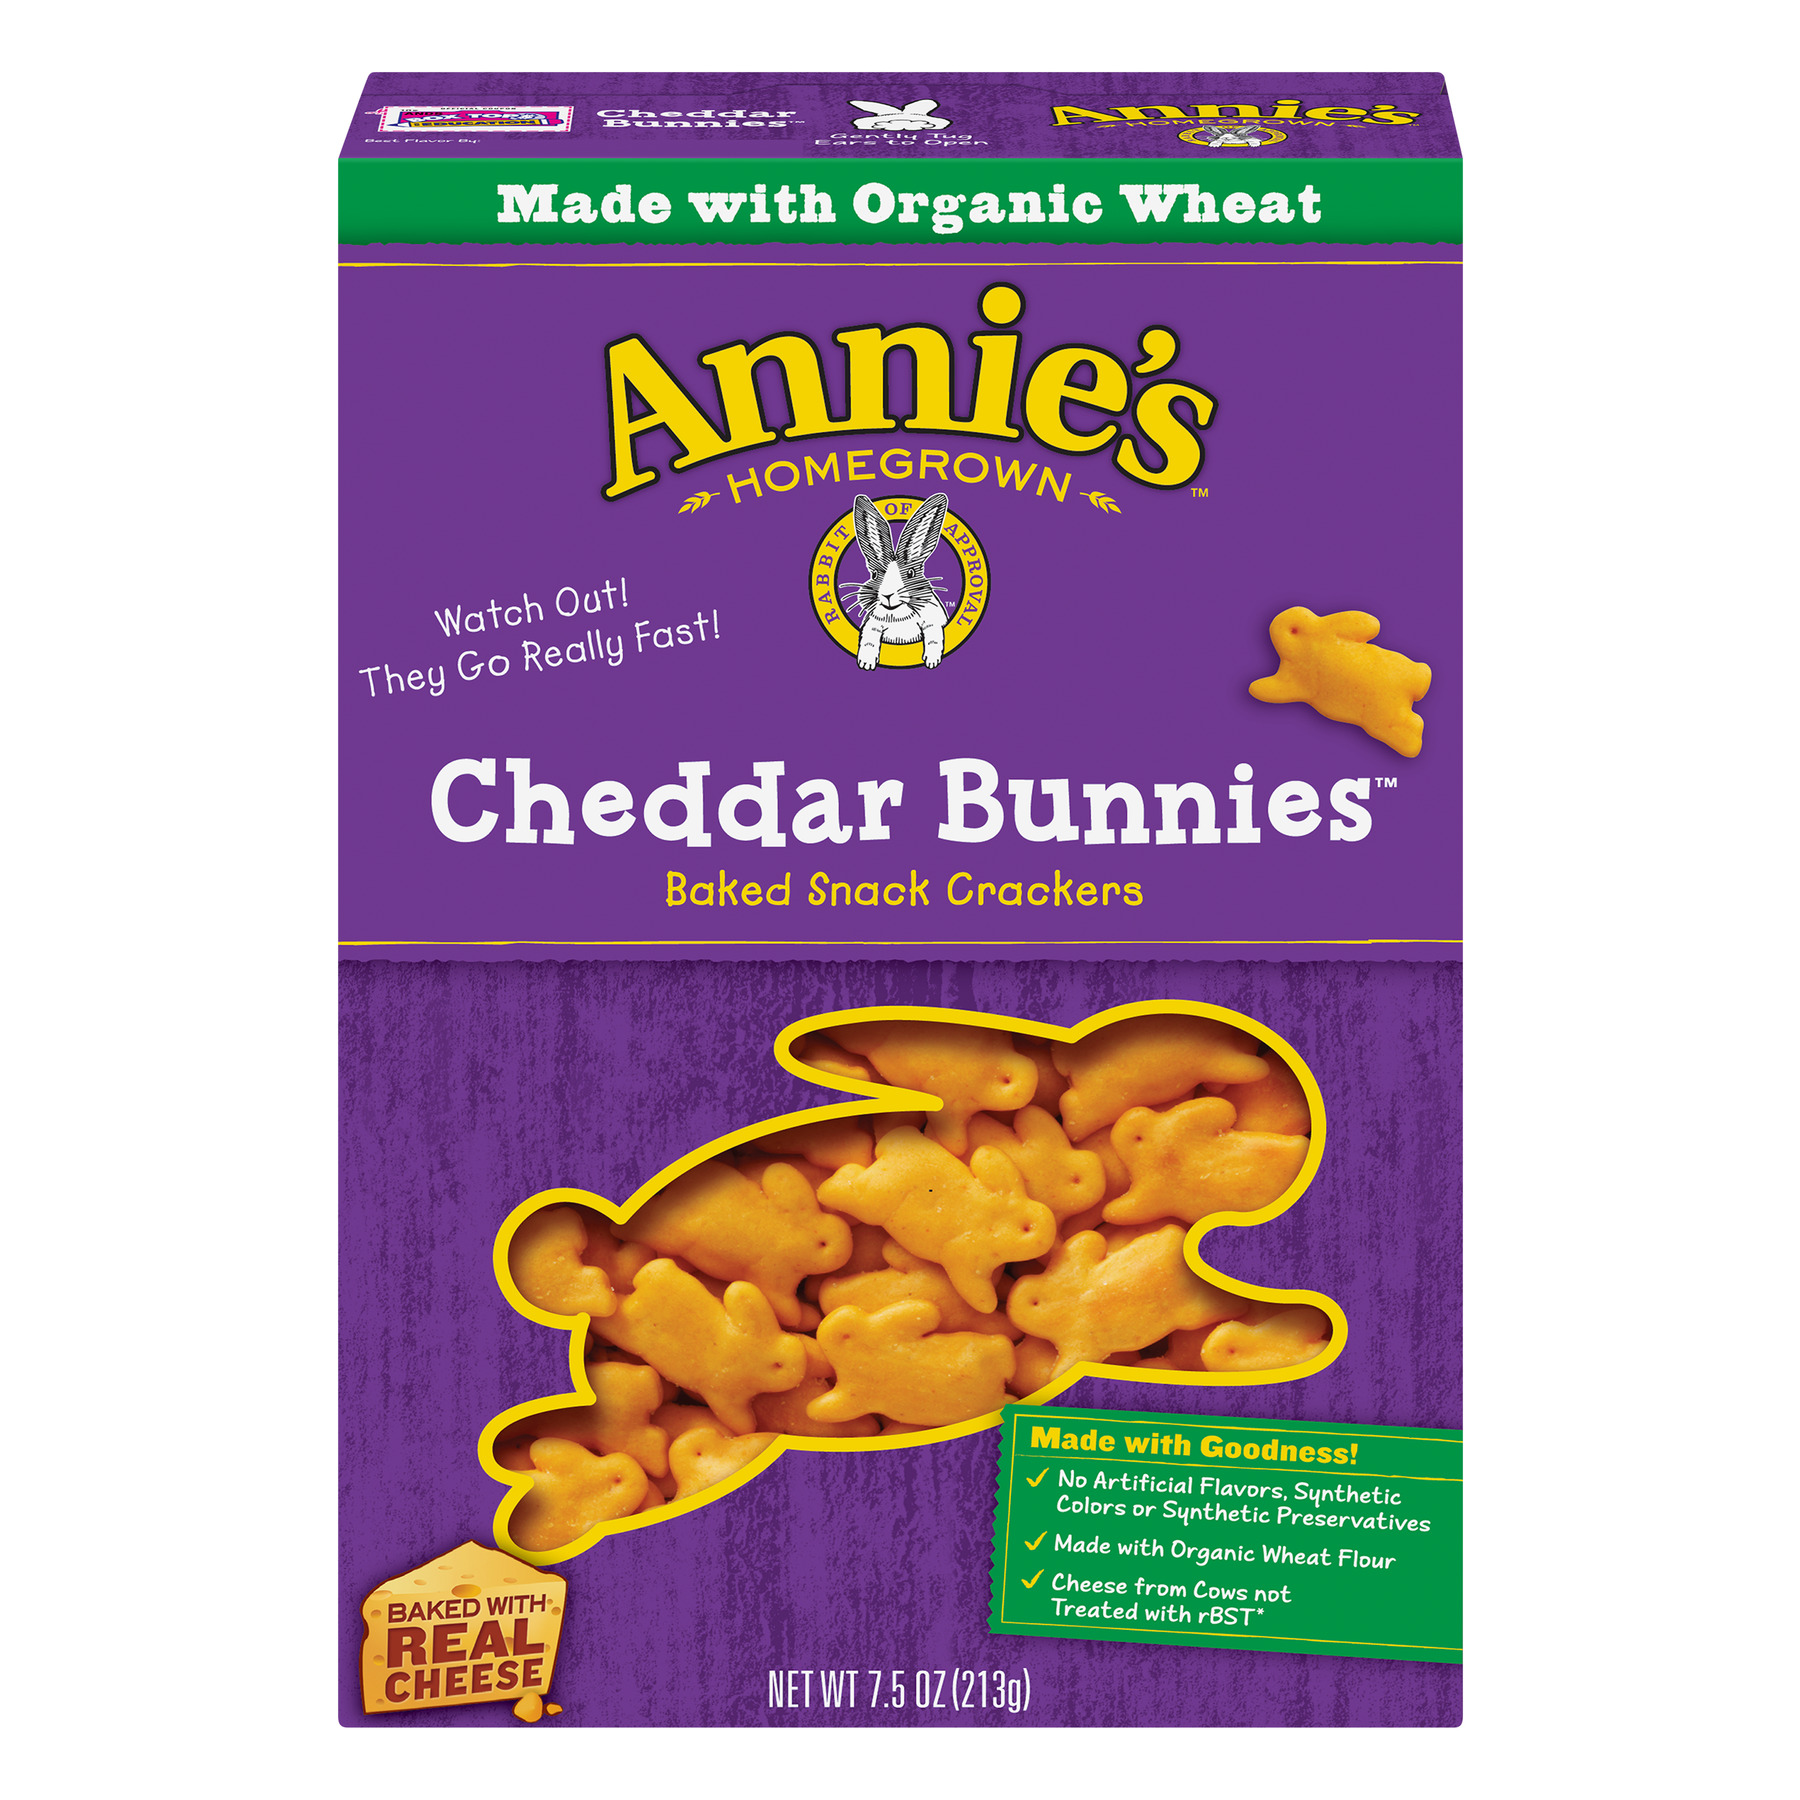 Annie's Cheddar Bunnies Baked Snack Crackers, 7.5 oz